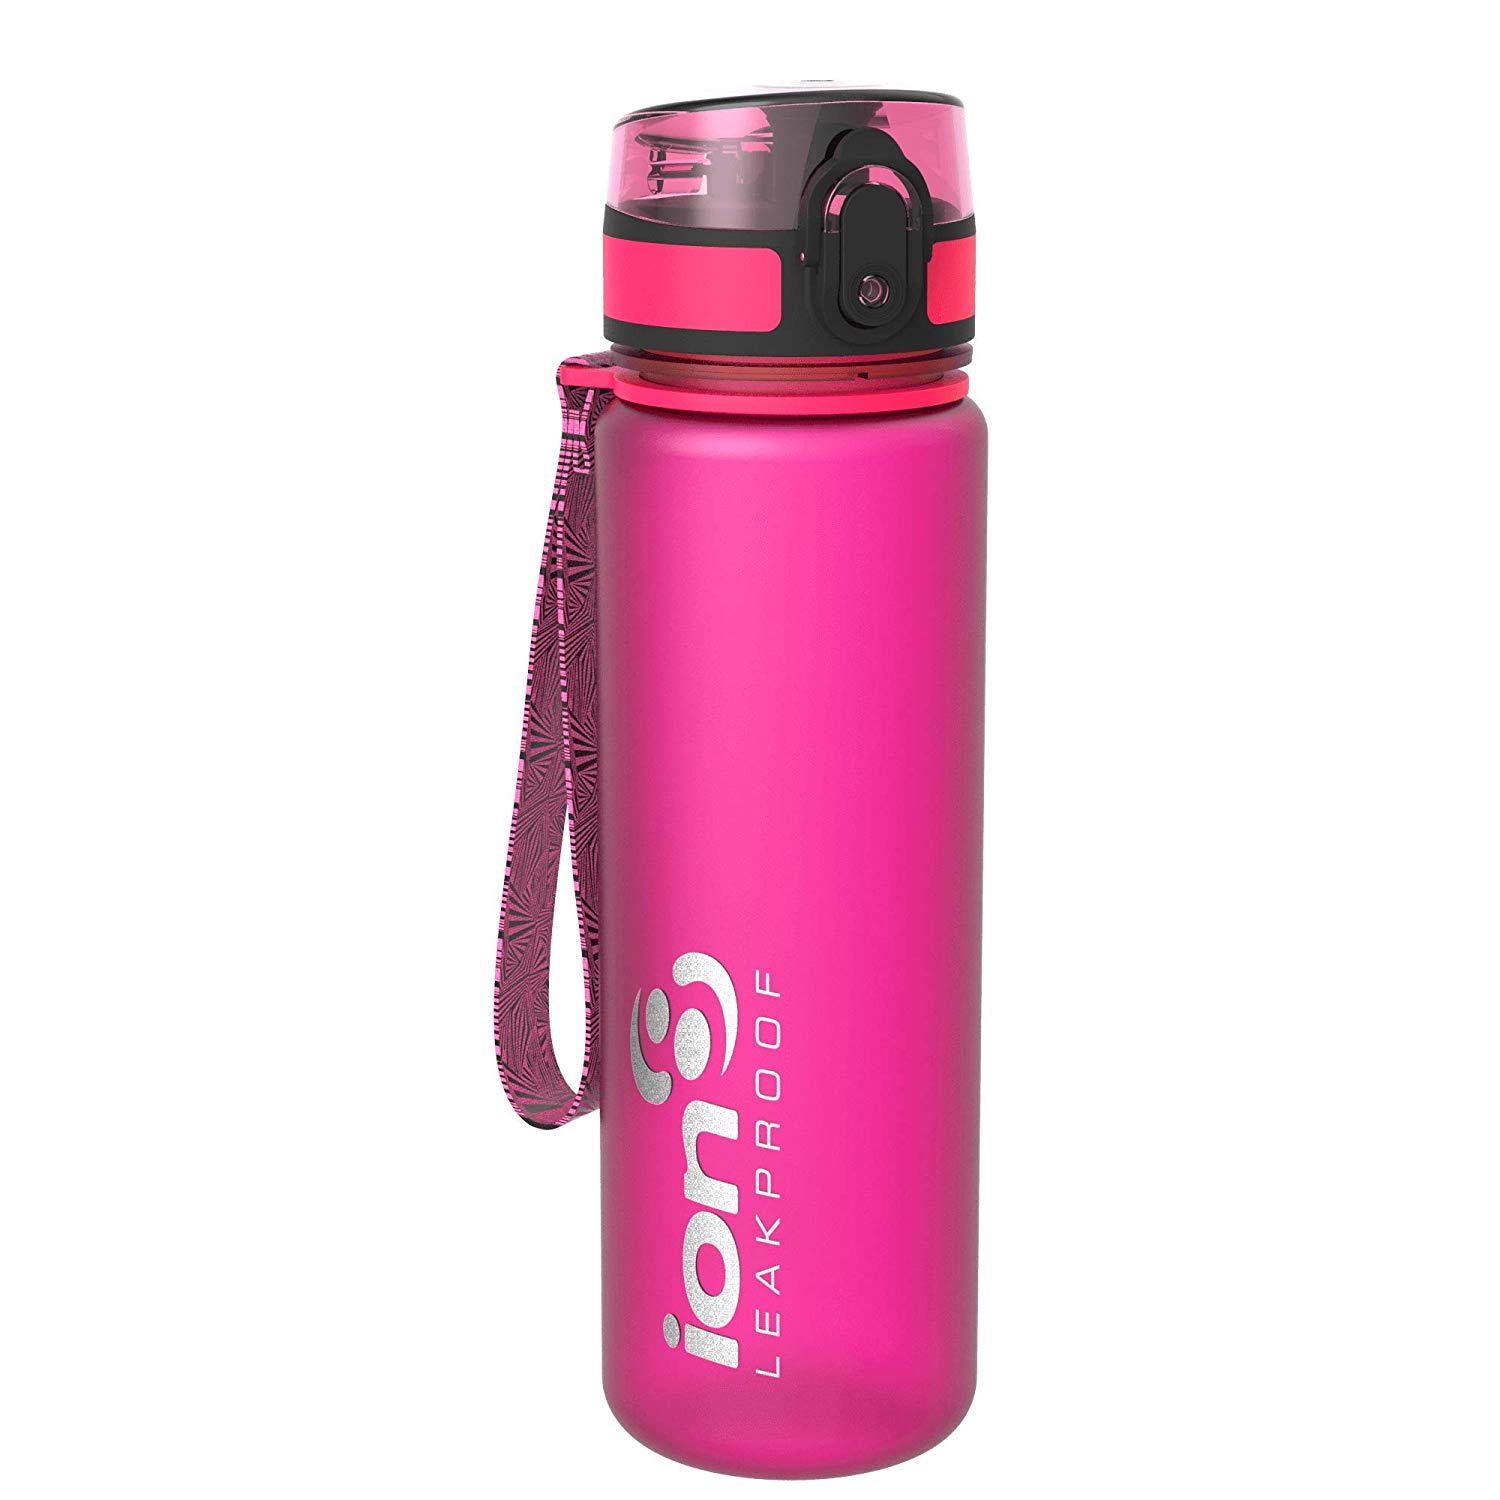 Ion8 Leak Proof Slim Water Bottle, BPA Free, 500ml / 18oz